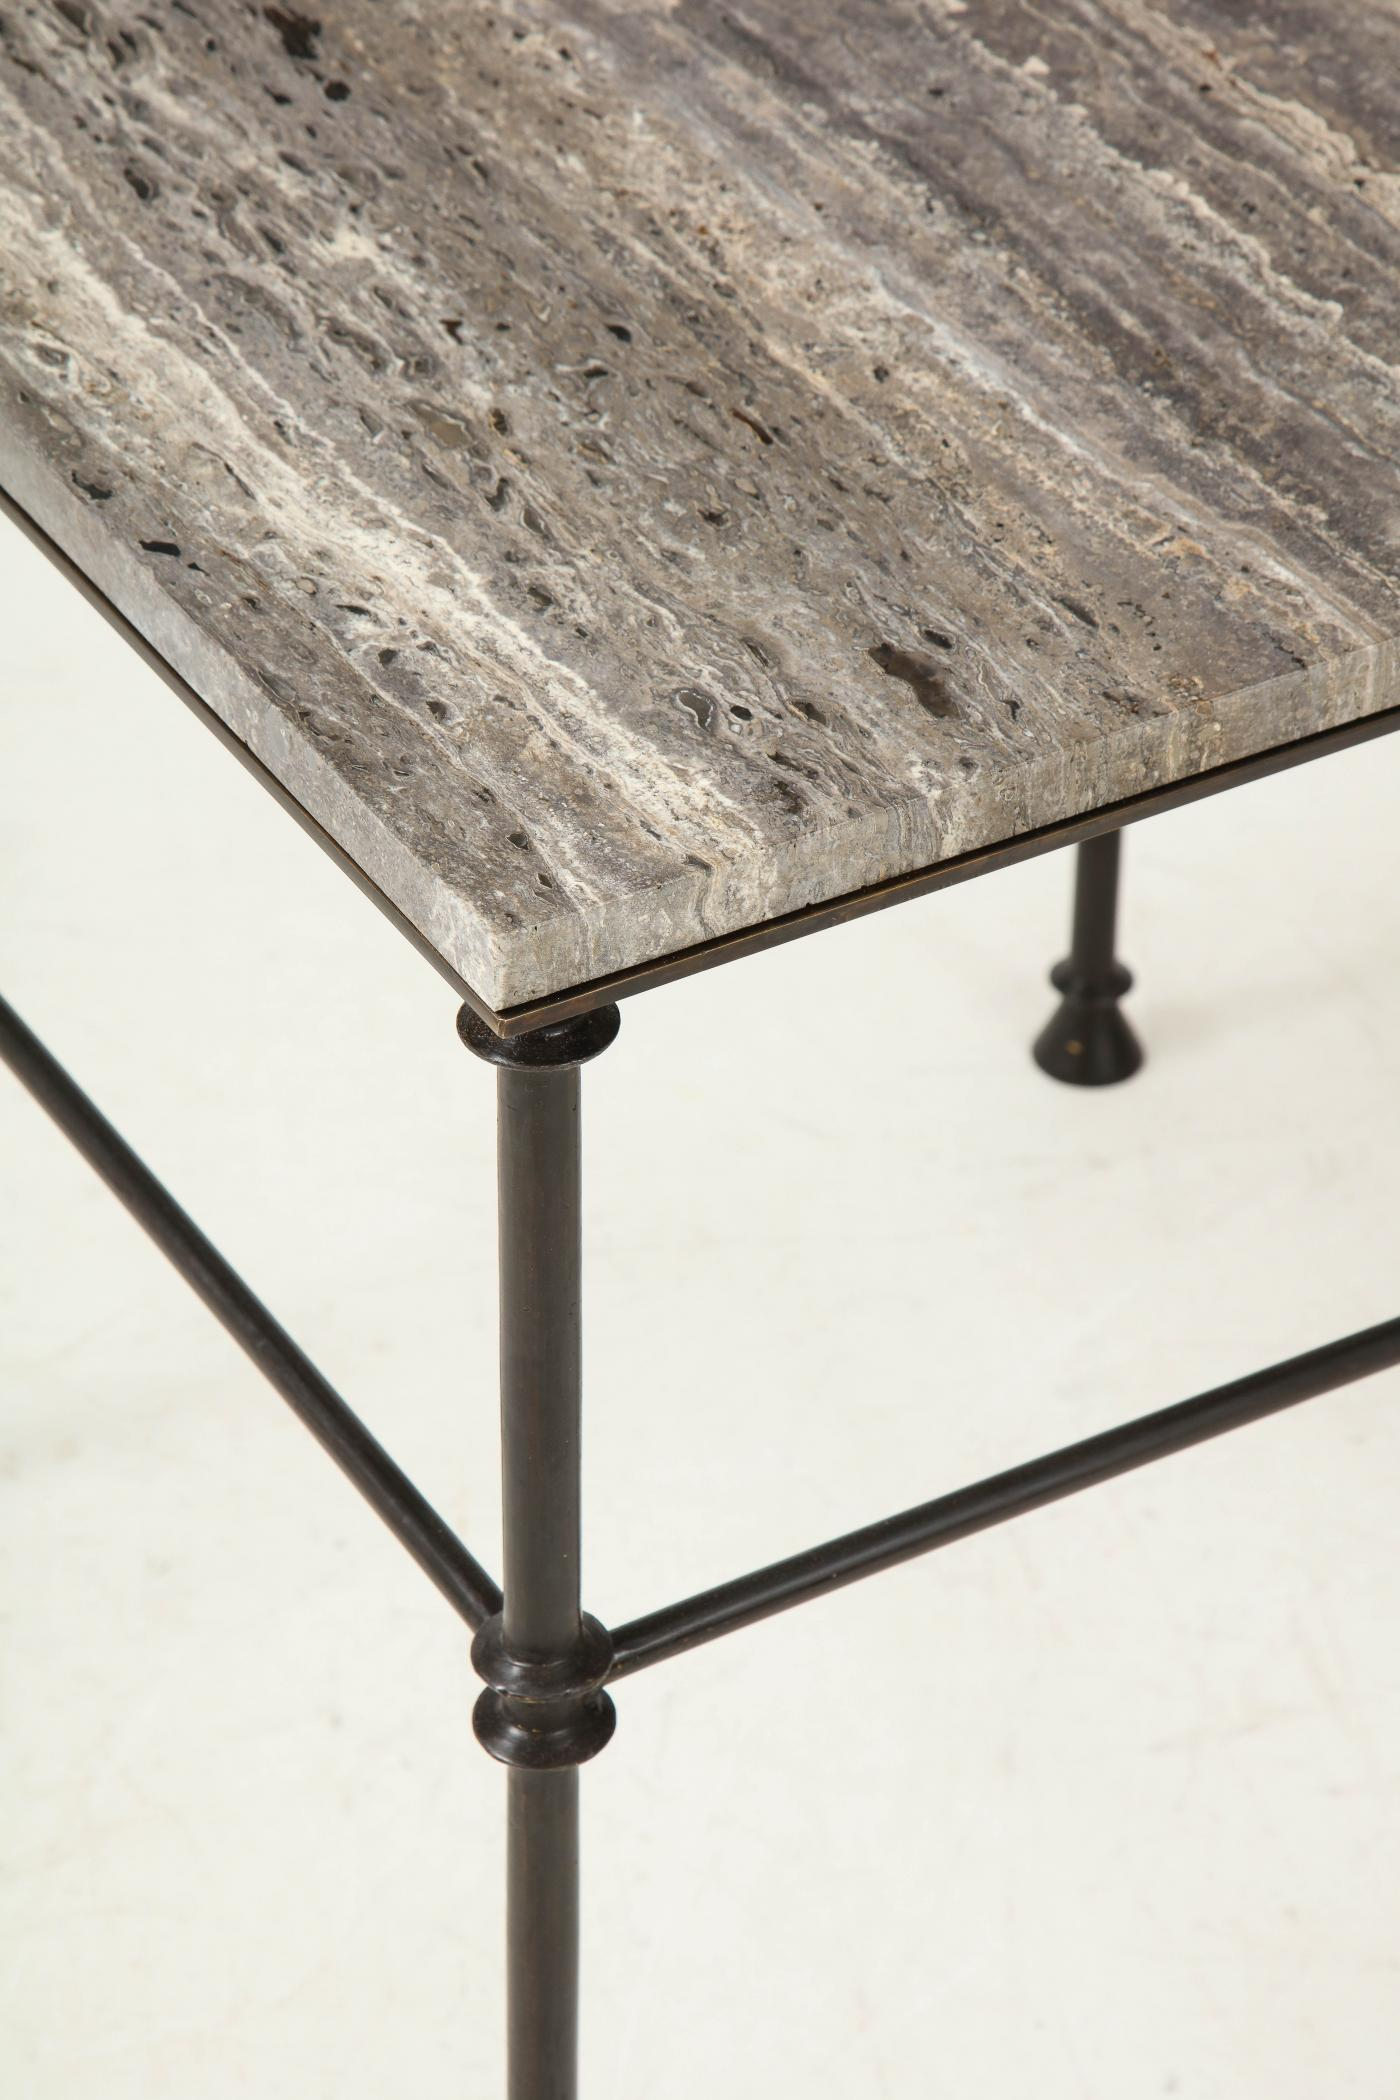 A pair of custom made tables, bronze legs and